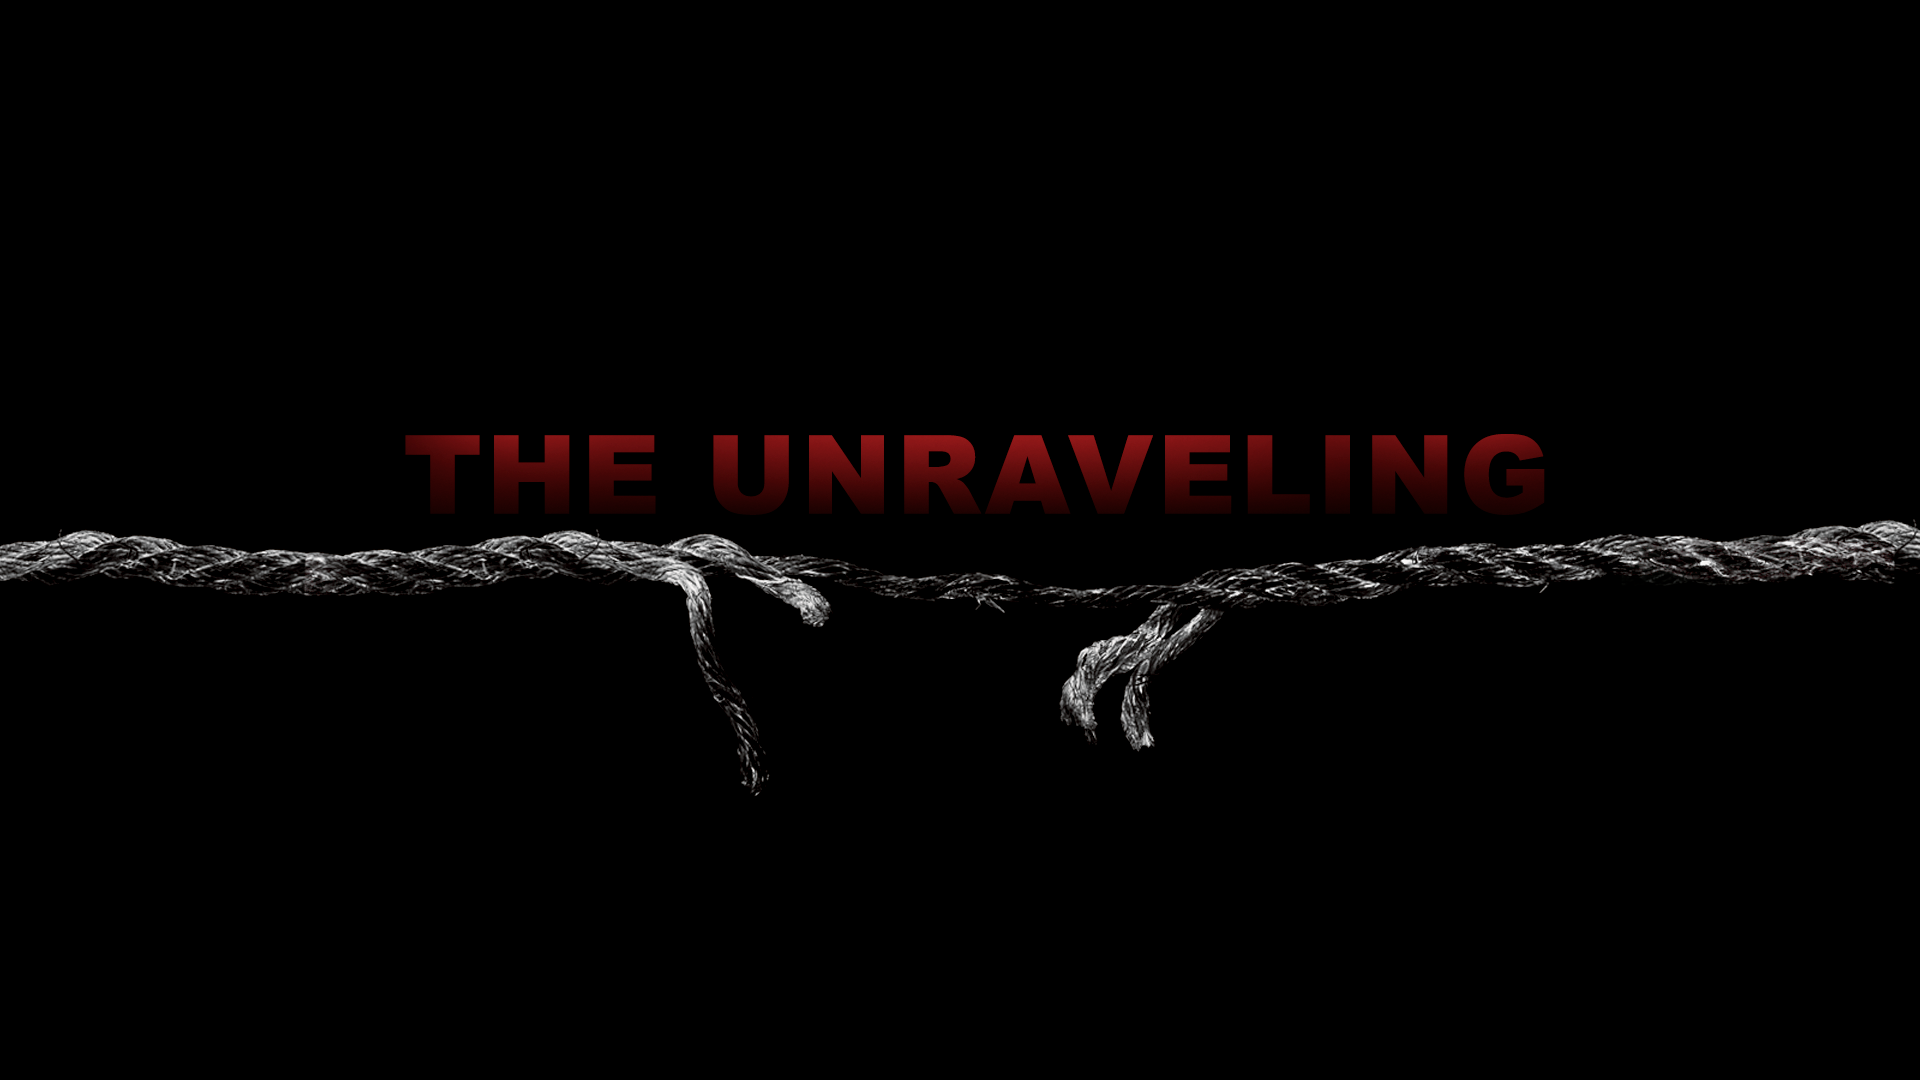 Unraveling 21: I Guess We're Done Here